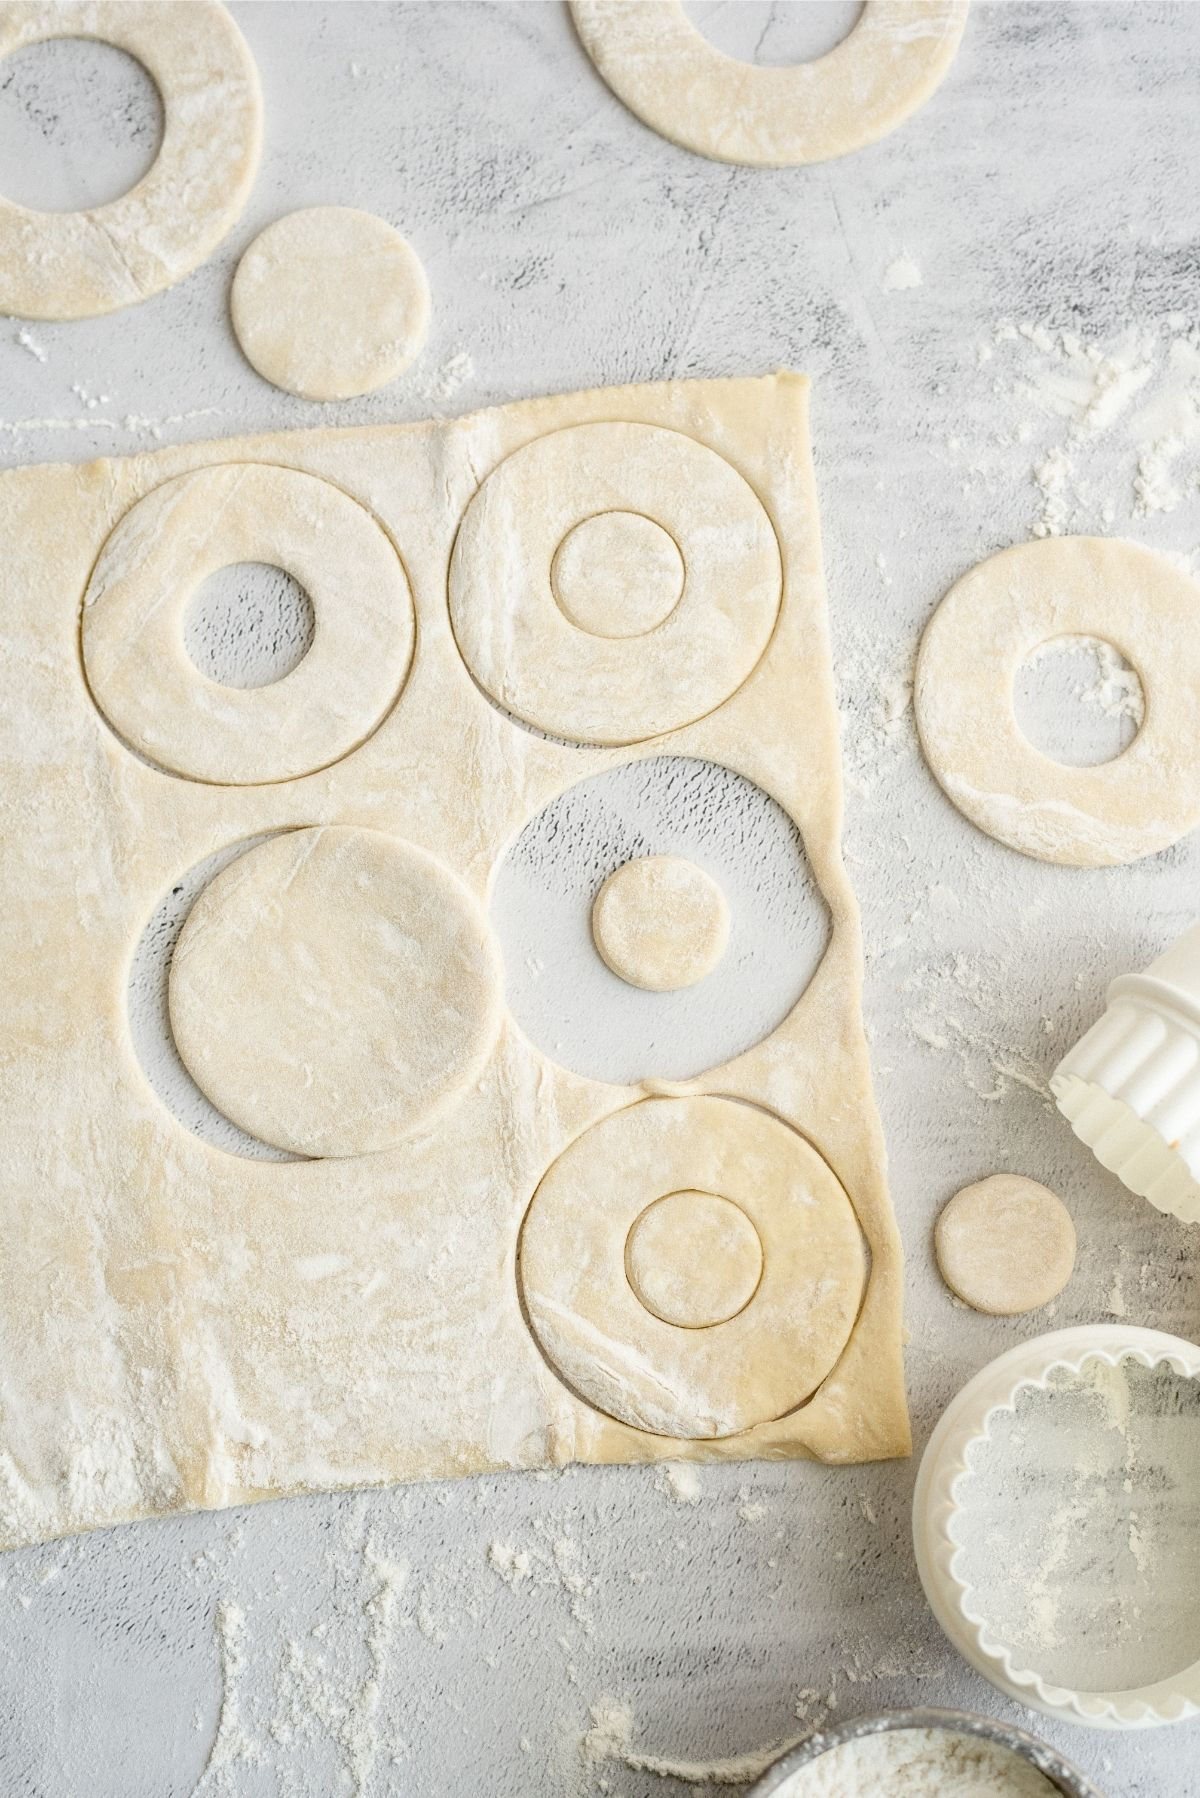 puff pastry dough cut out for donuts